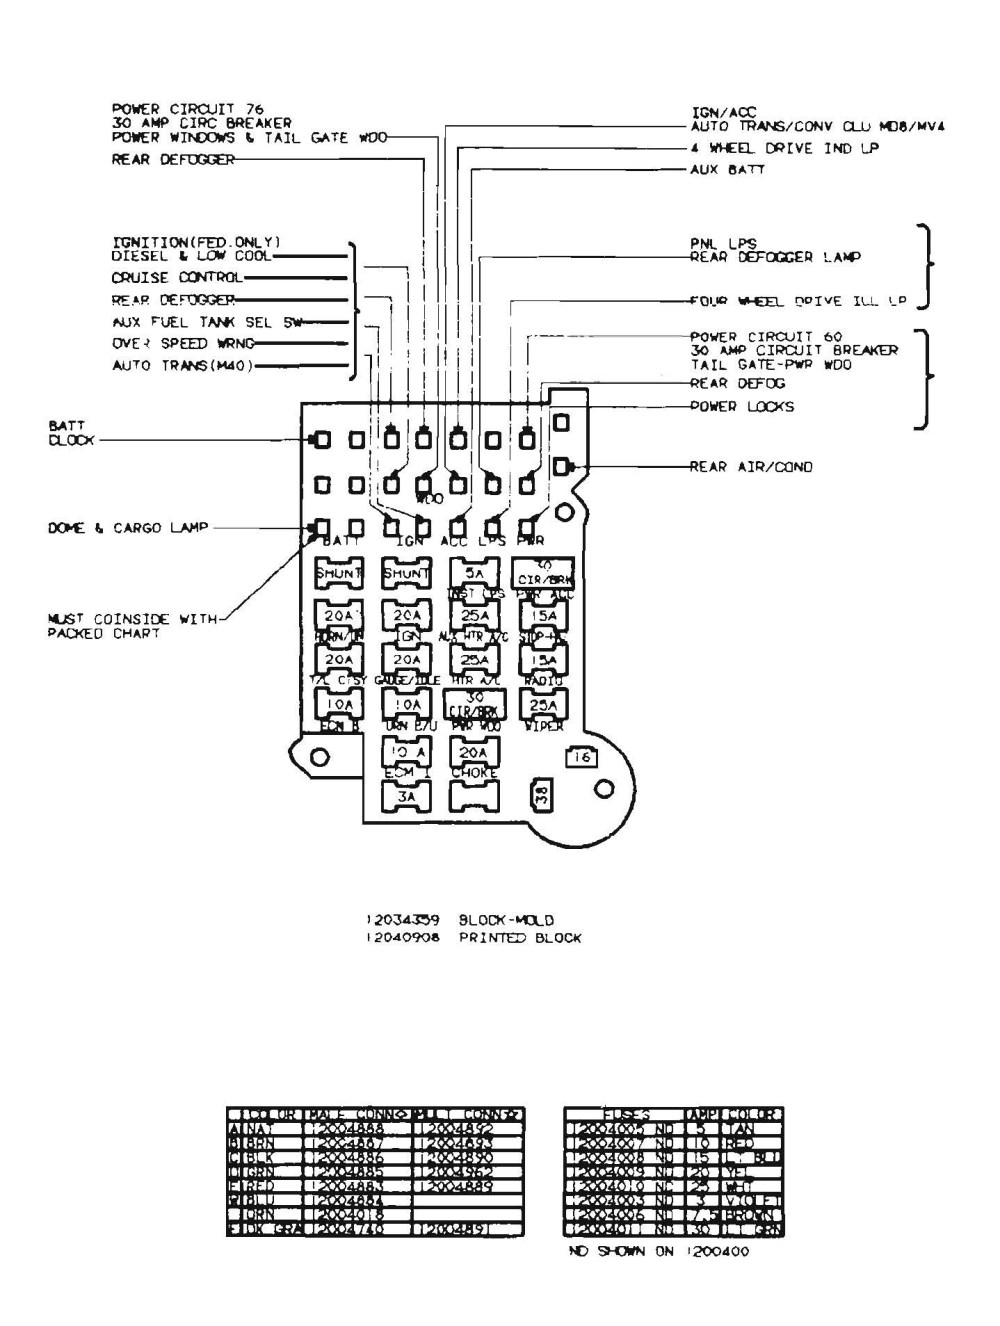 medium resolution of 91 gmc 1500 fuse diagram wiring diagram yer 91 gmc 1500 fuse diagram